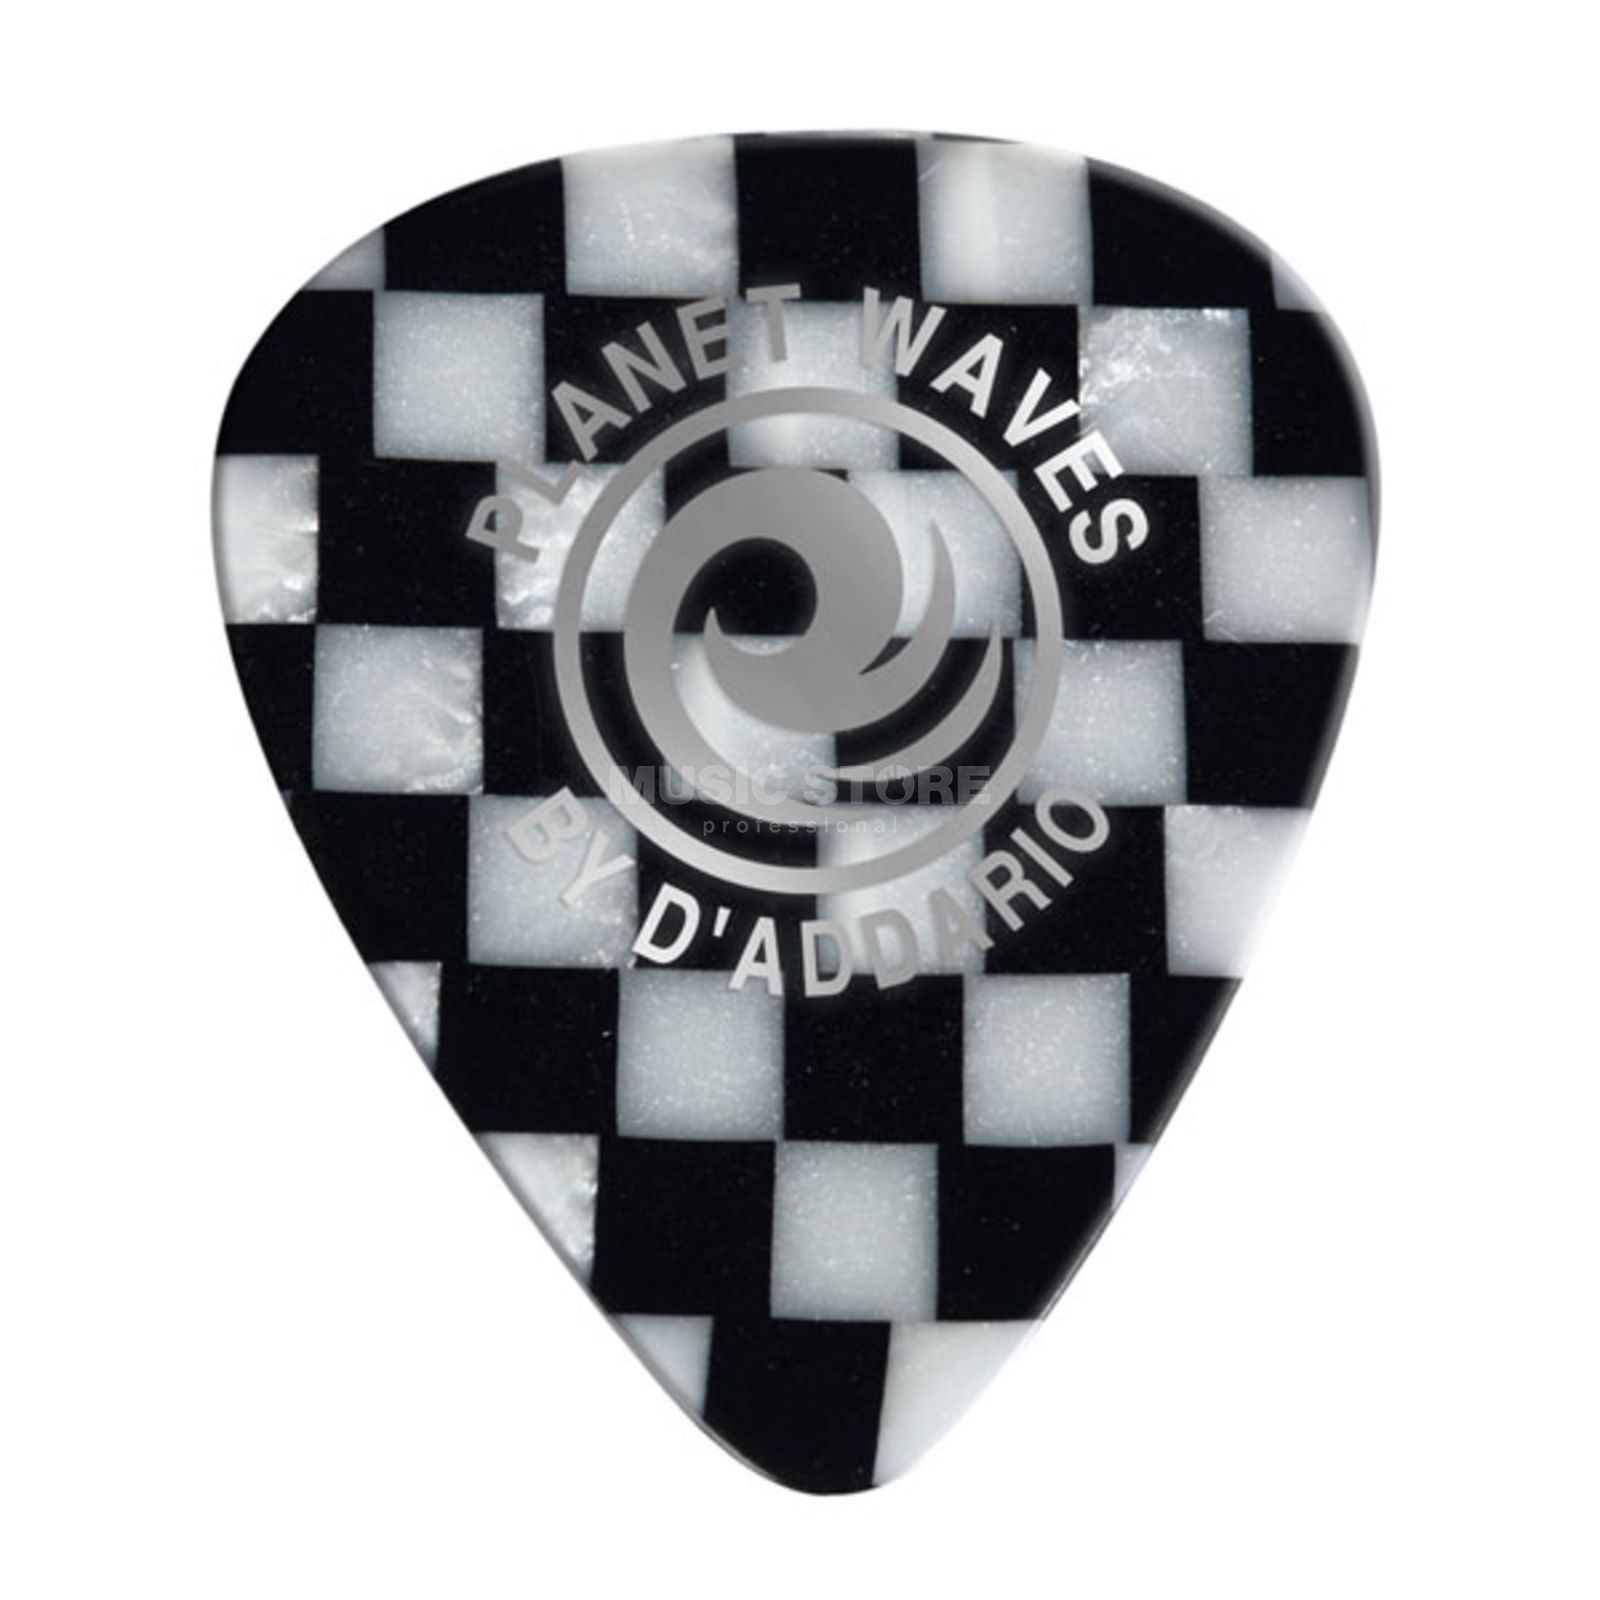 D'Addario Planet Waves Checkerboard Picks 0,70 mm 10-Pack, 1CCB4-10 Produktbild